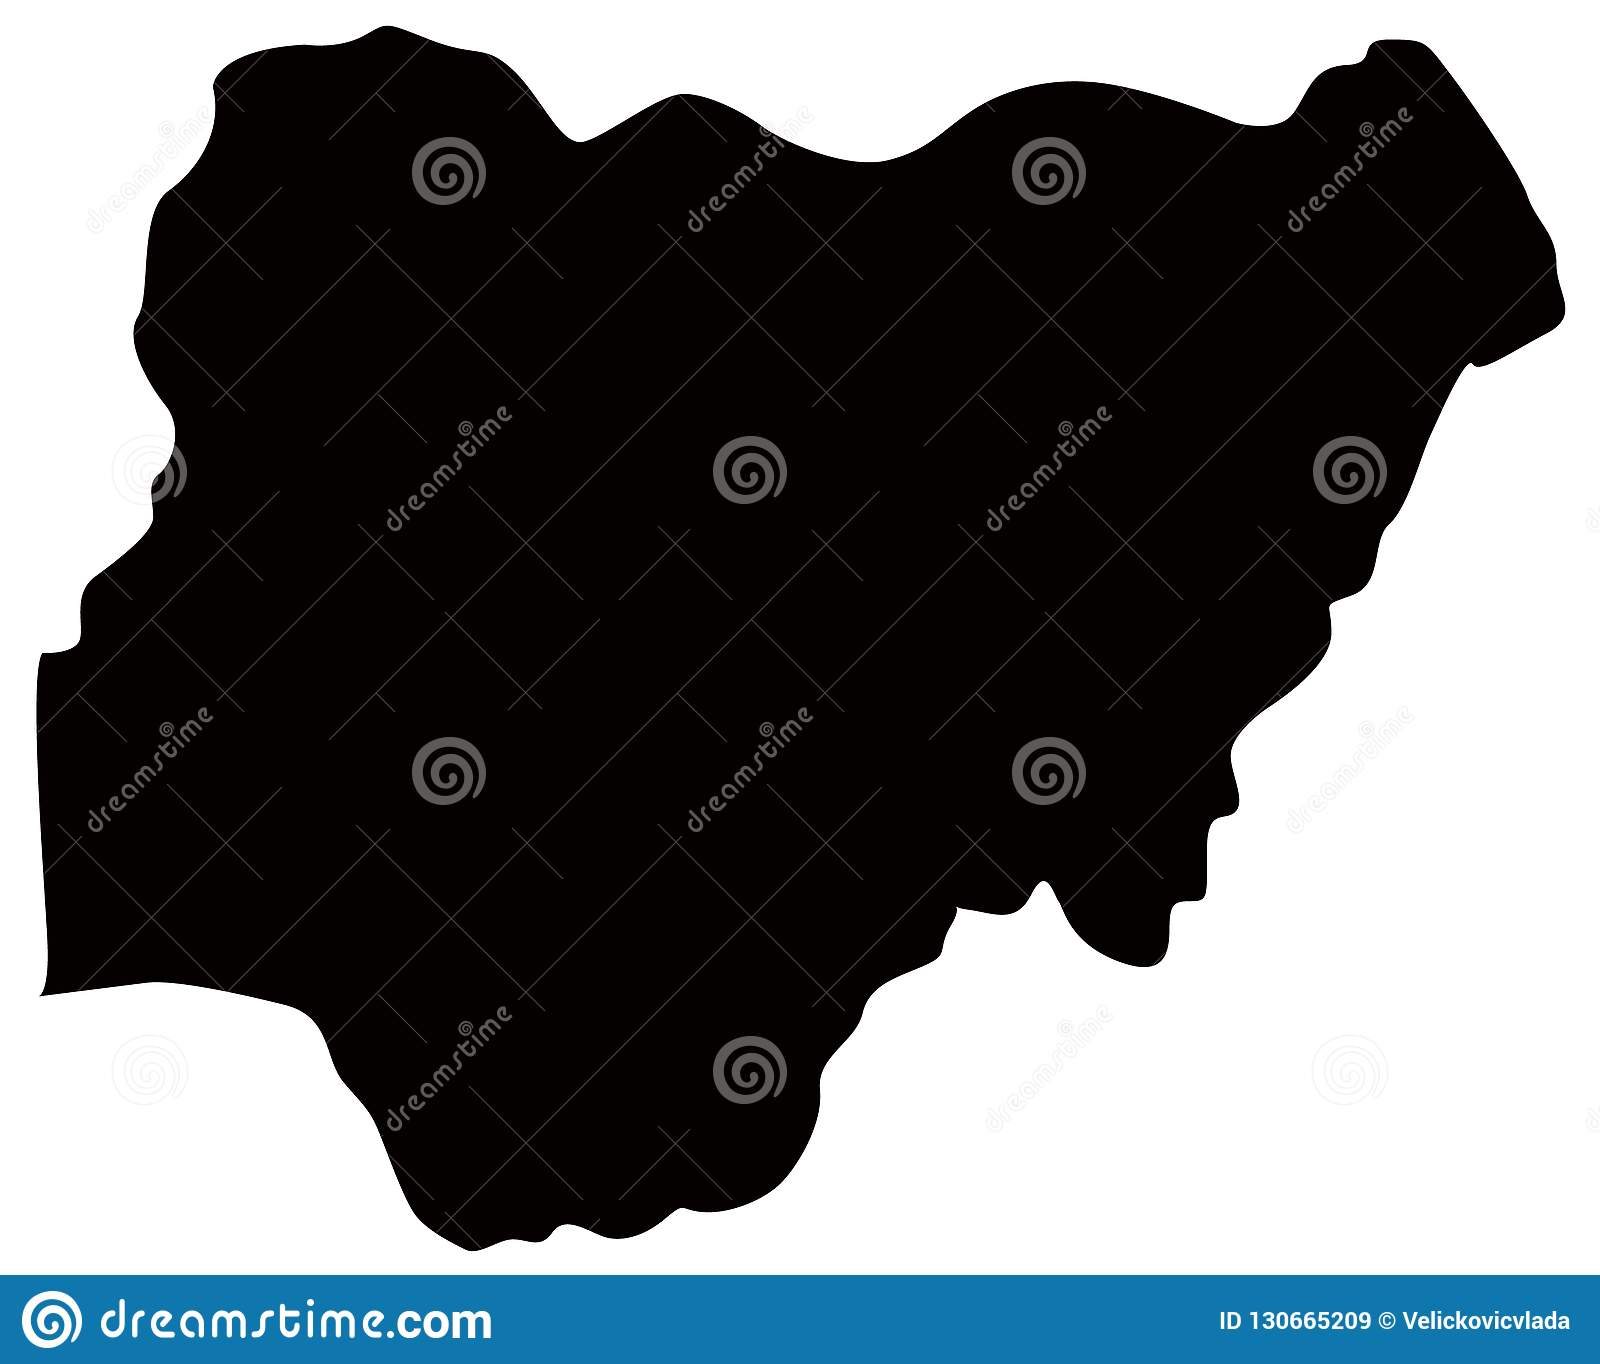 Nigeria Map Country Between Central And West Africa Stock Vector